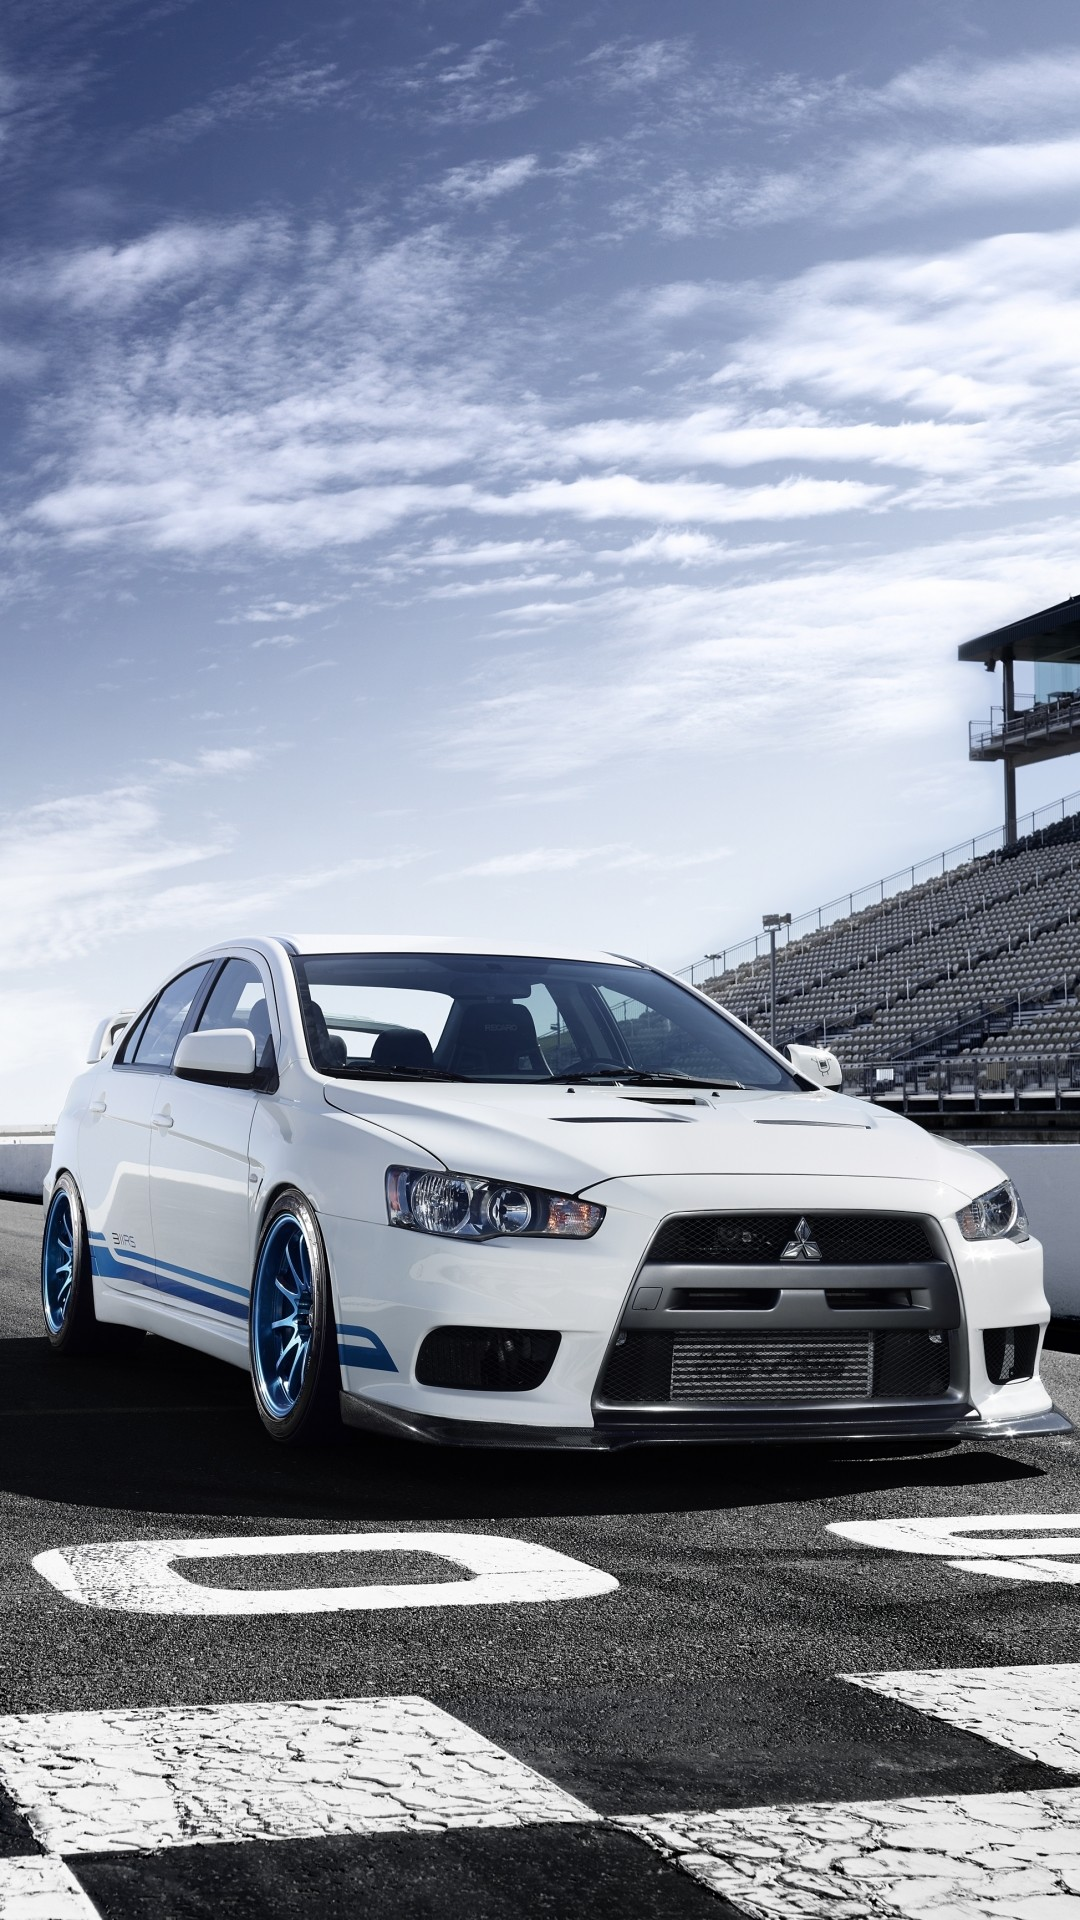 Evo X Iphone Wallpaper 46 Images